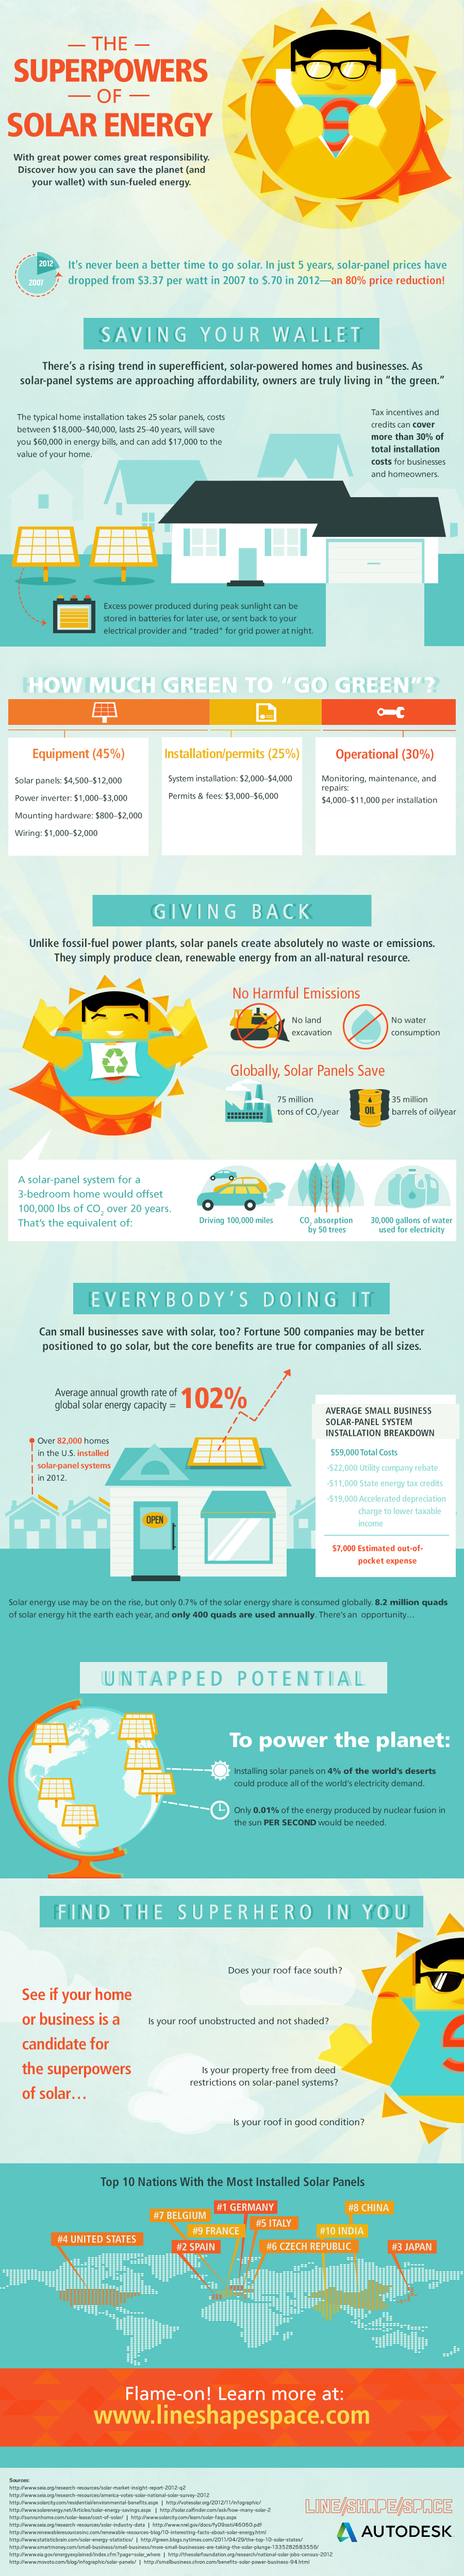 infographic - superpowers of solar energy